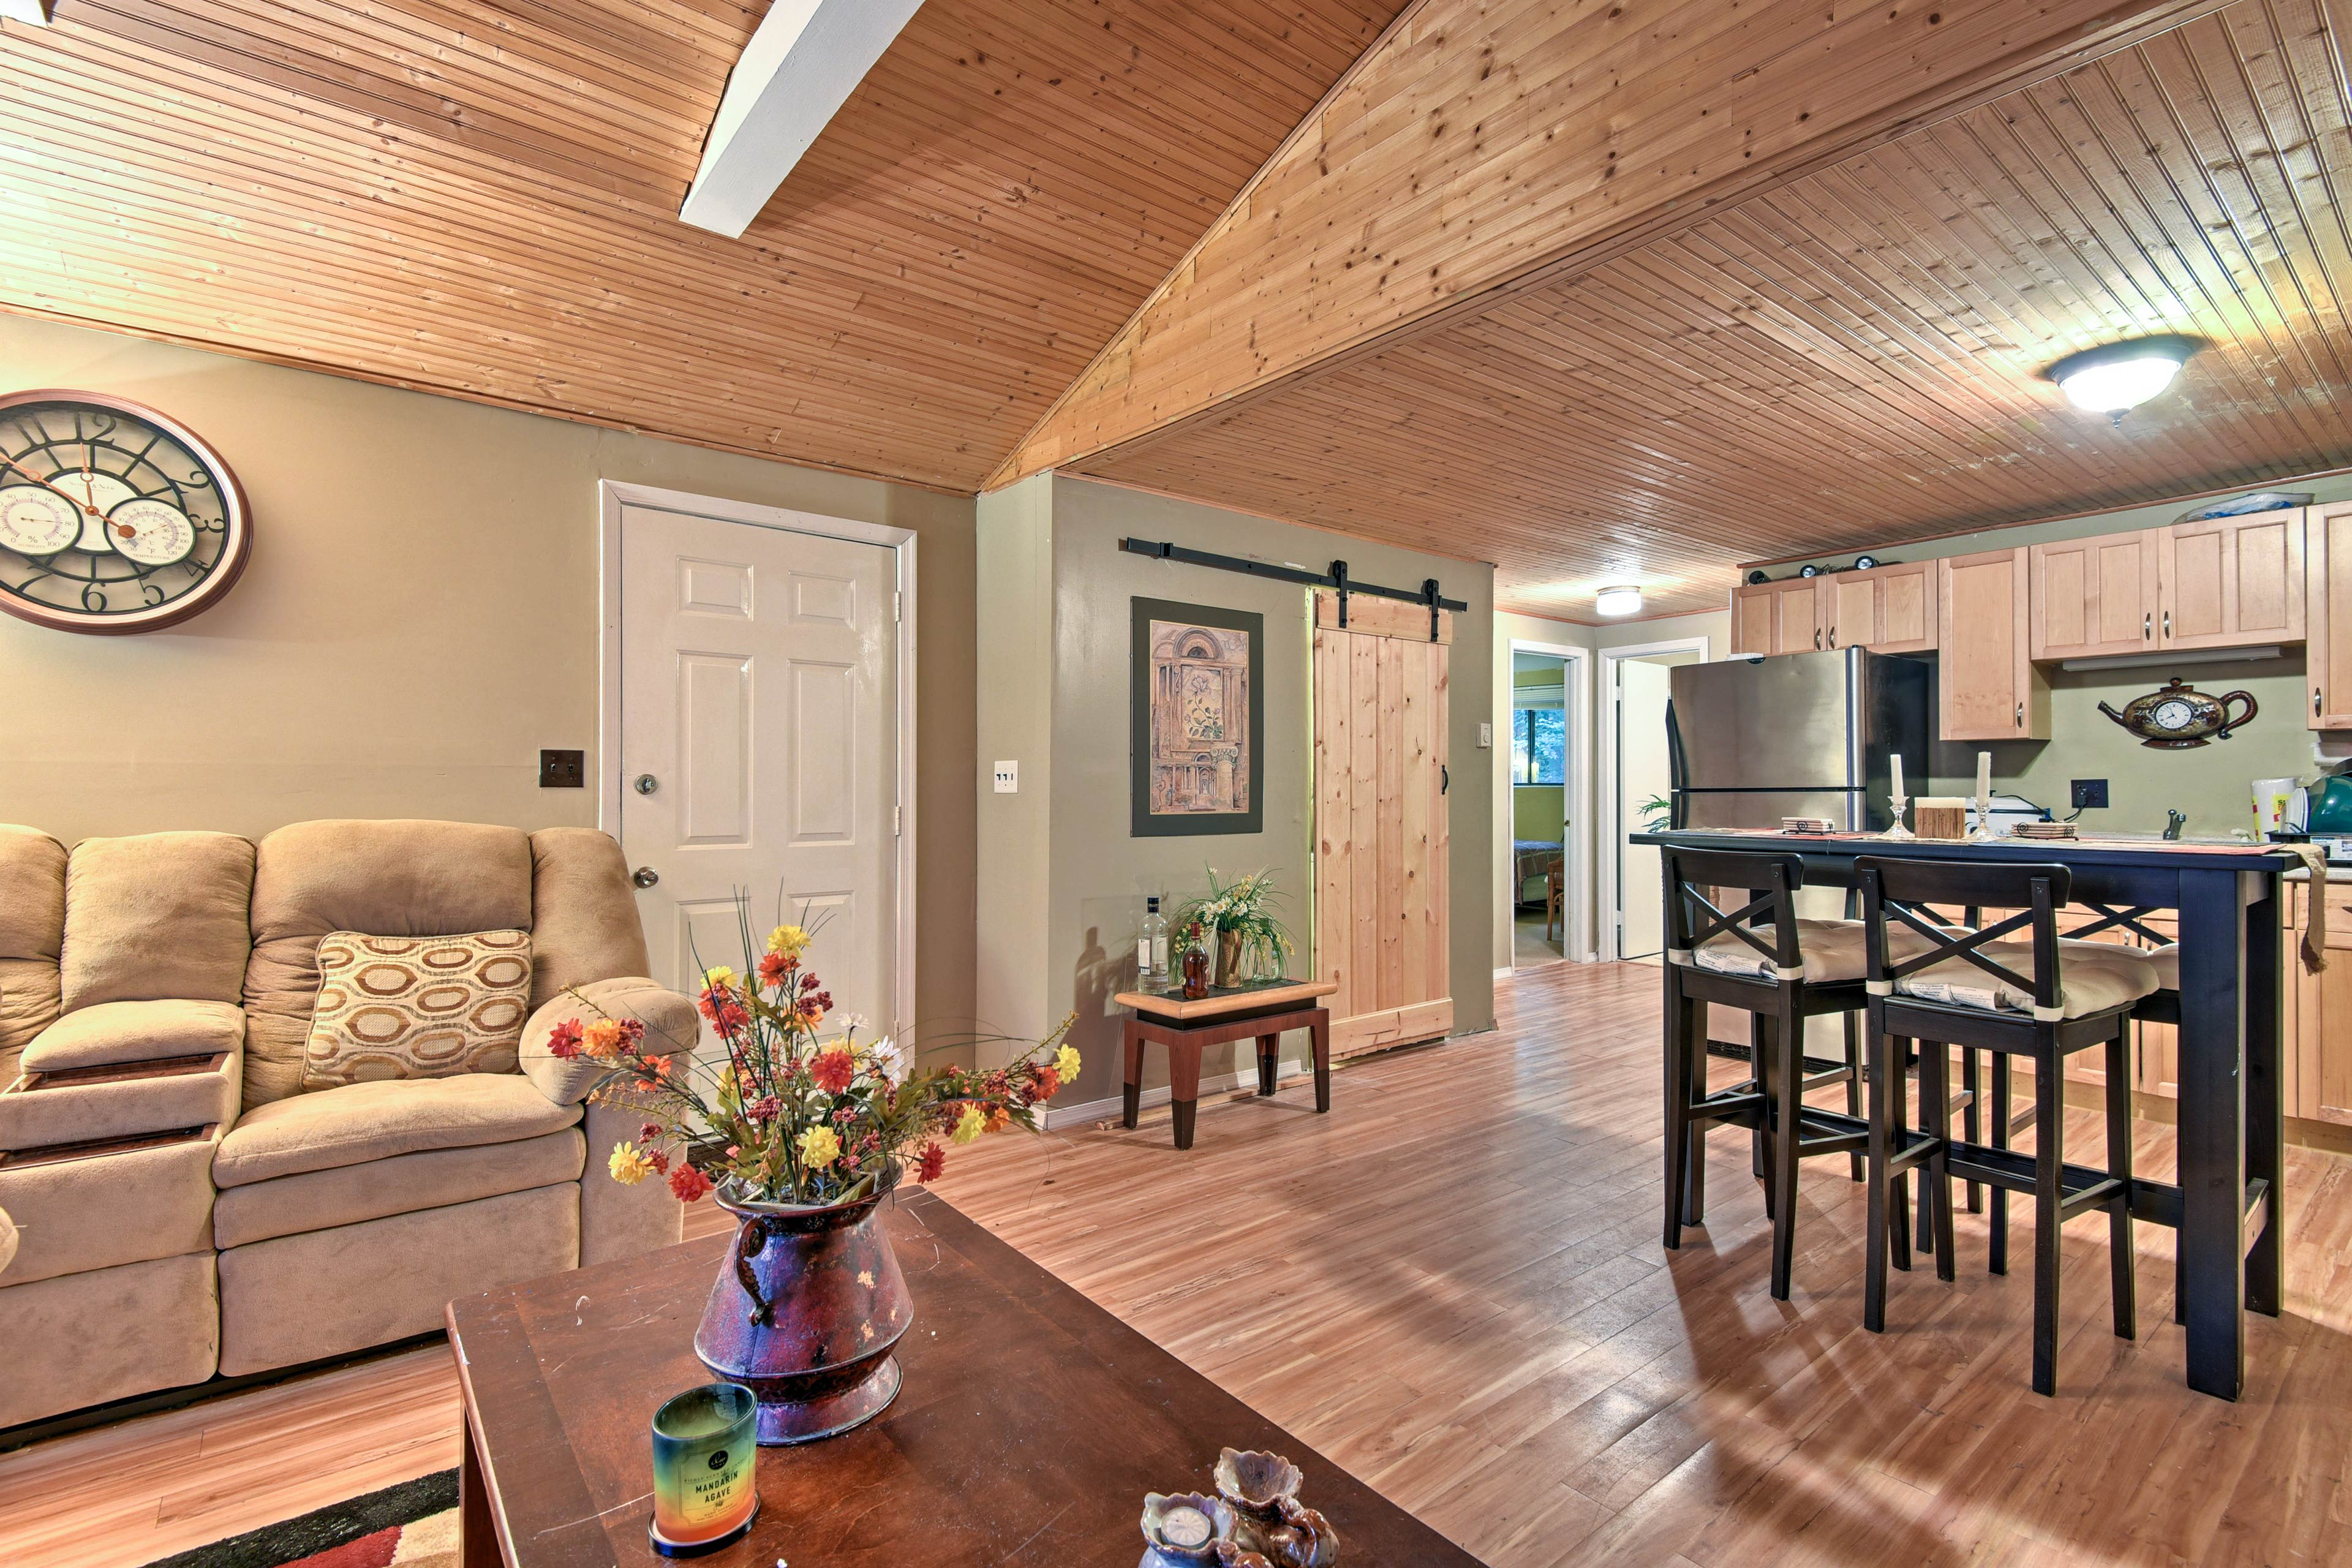 No one will feel left out of the conversation in the open-concept living area.